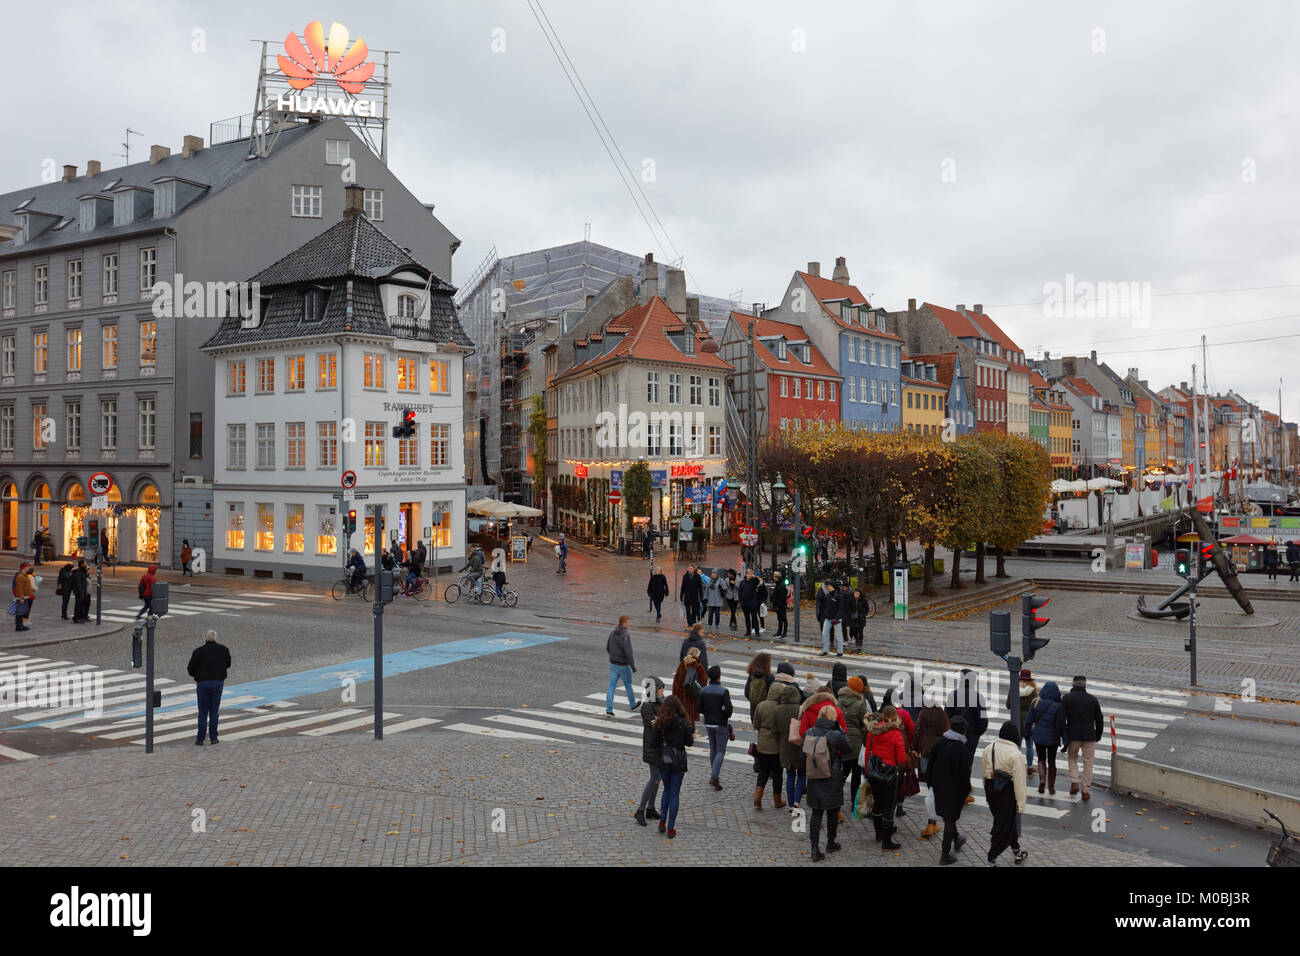 Copenhagen, Denmark - November 6, 2016: People on Kongens Nytorv square in an autumn day. The largest square of - Stock Image